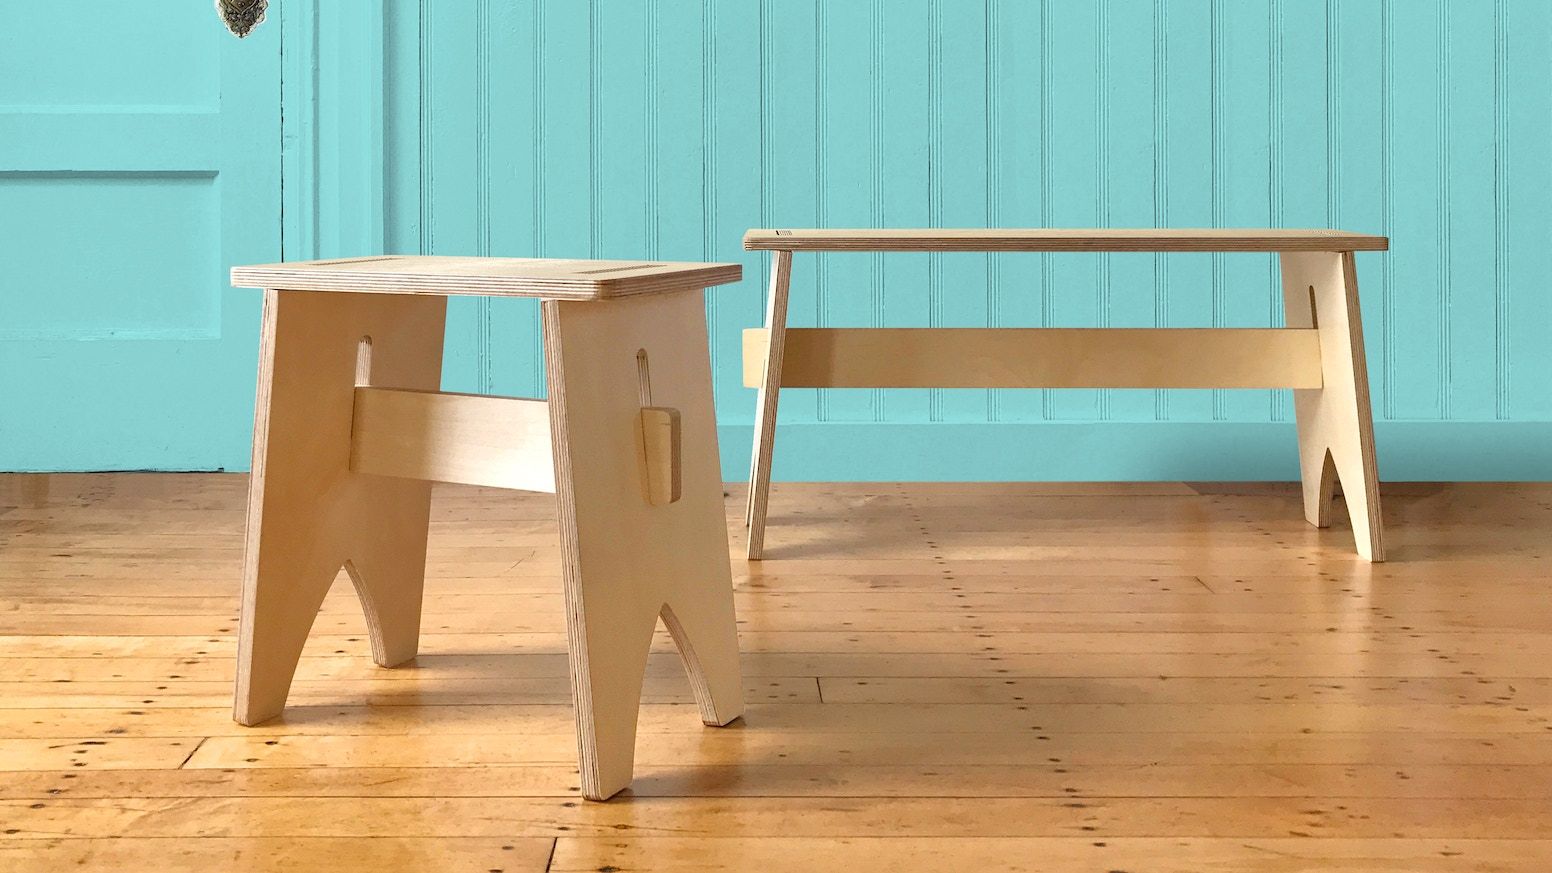 Baltic birch + no-tool assembly - there when you need it, away when you don't. A simple bench designed to encourage progress.